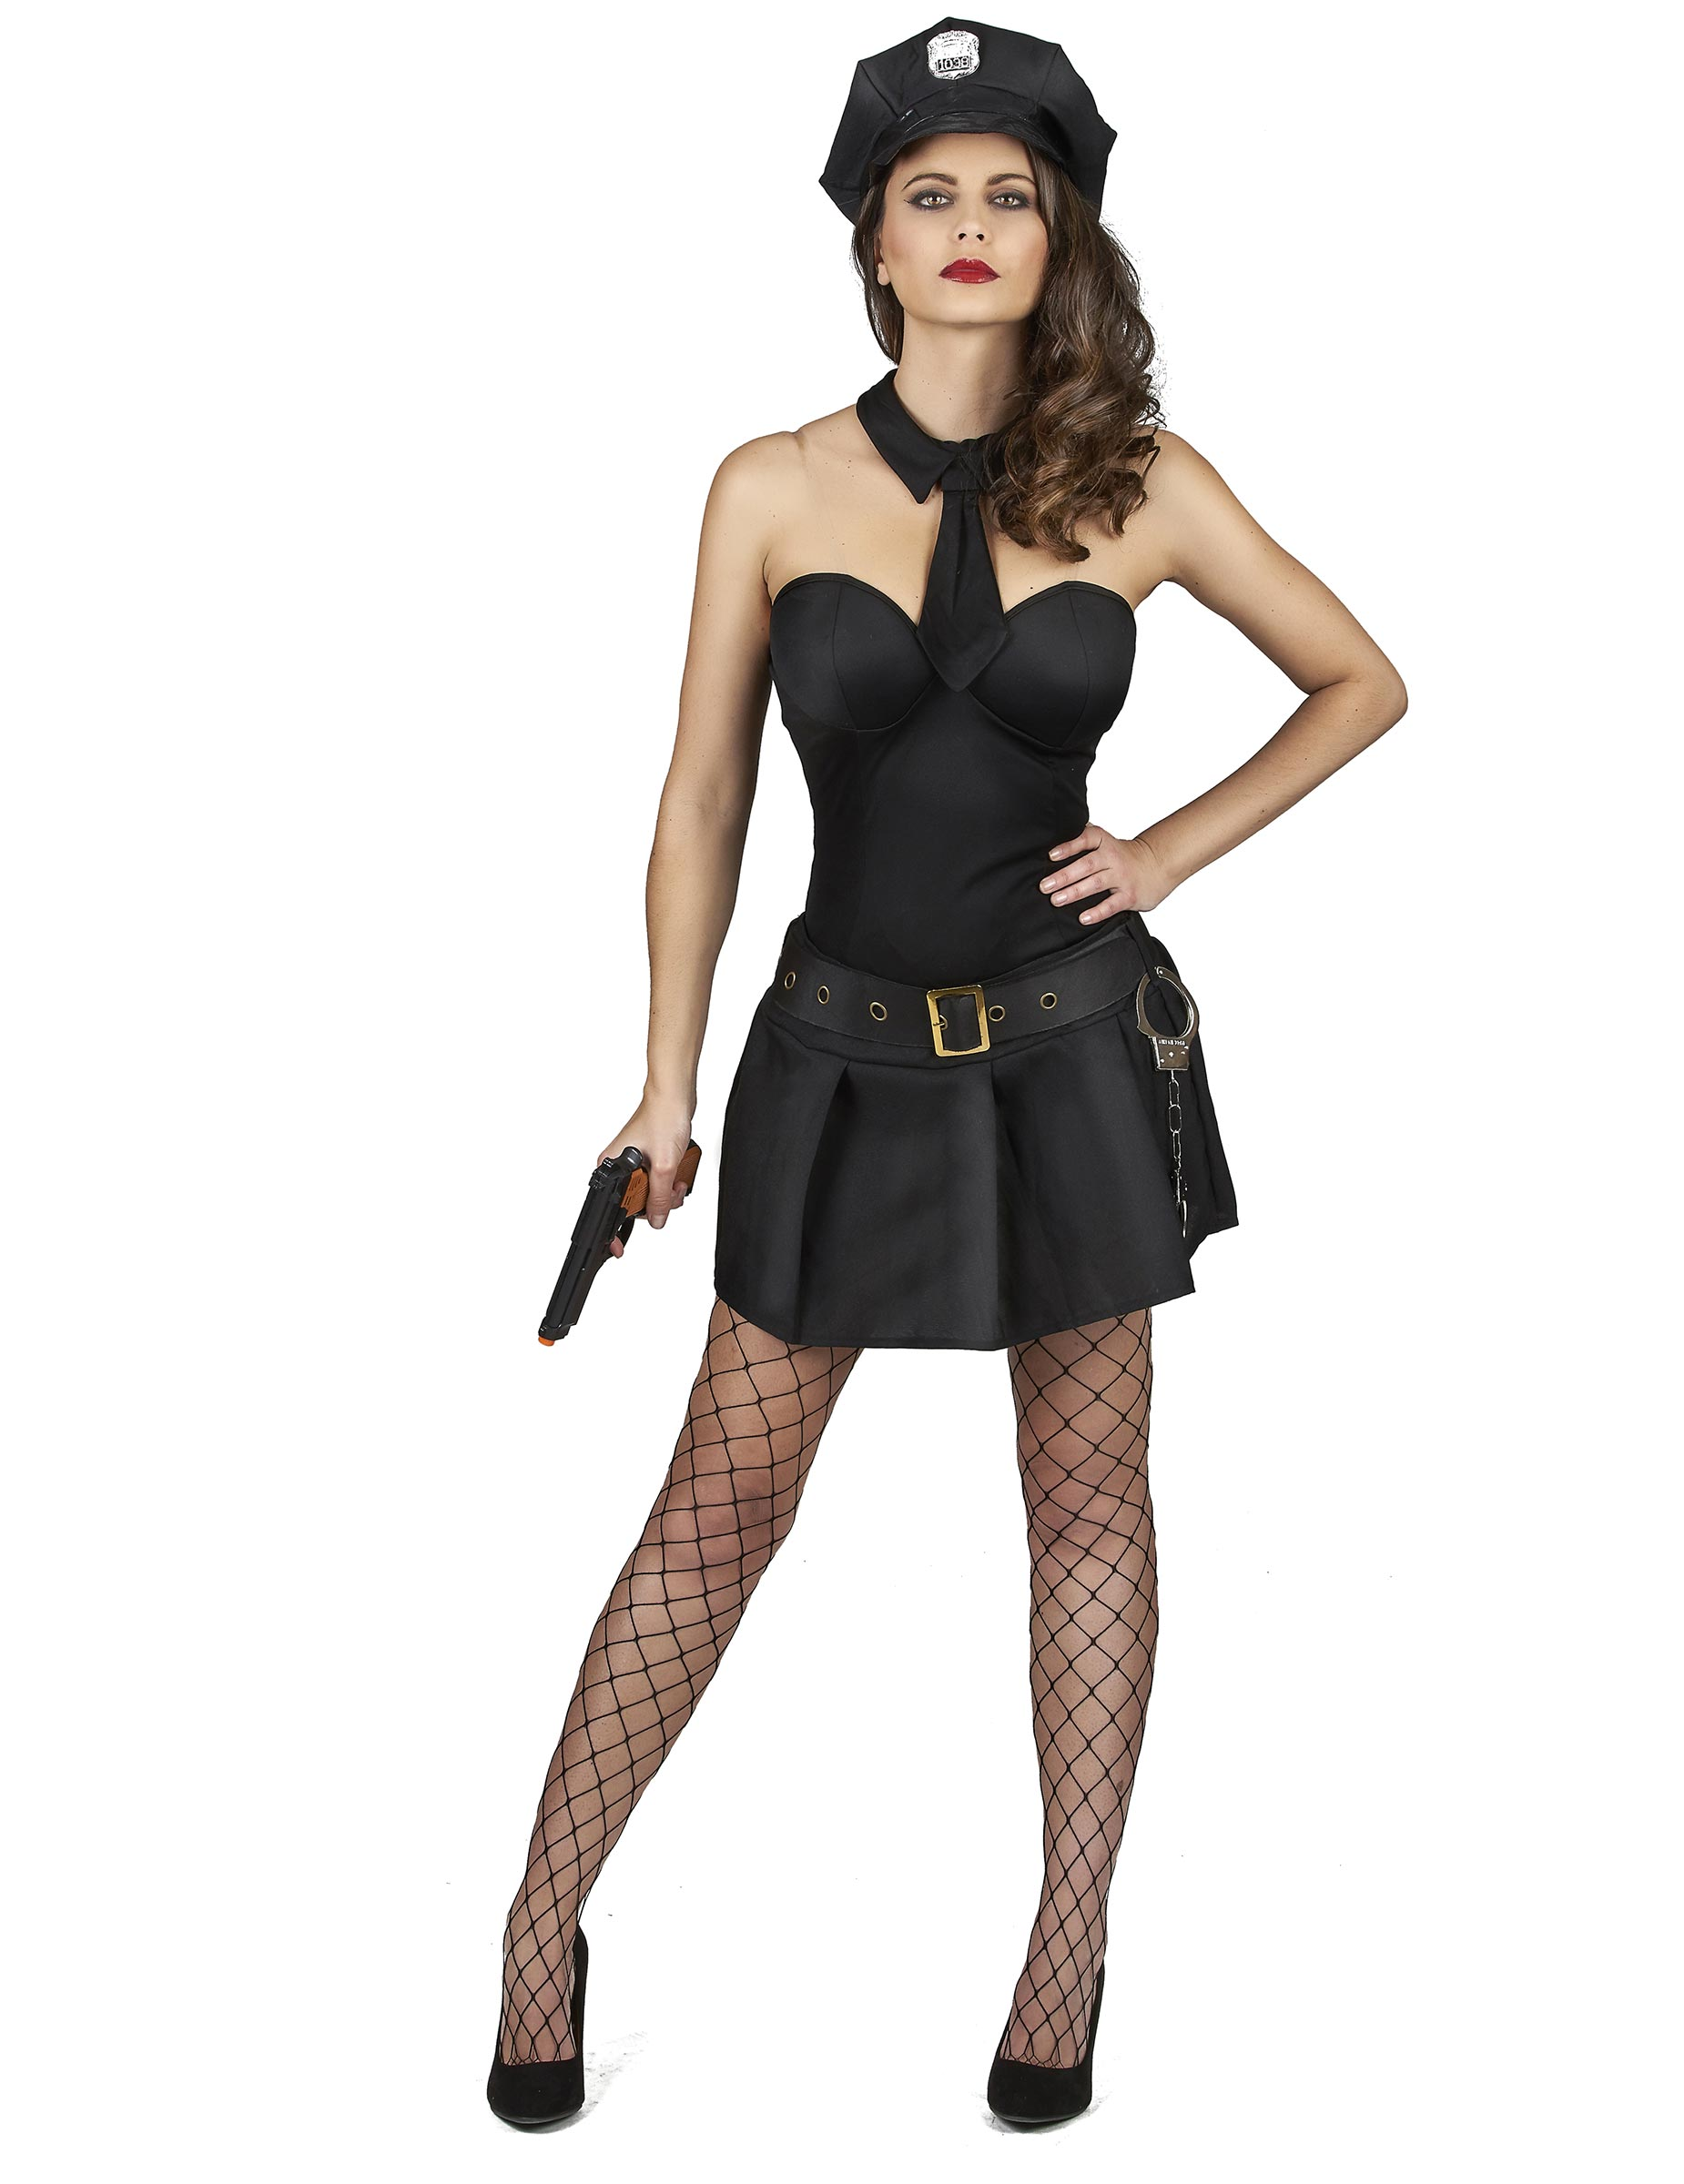 Agent police movie hot woman lp officer 4